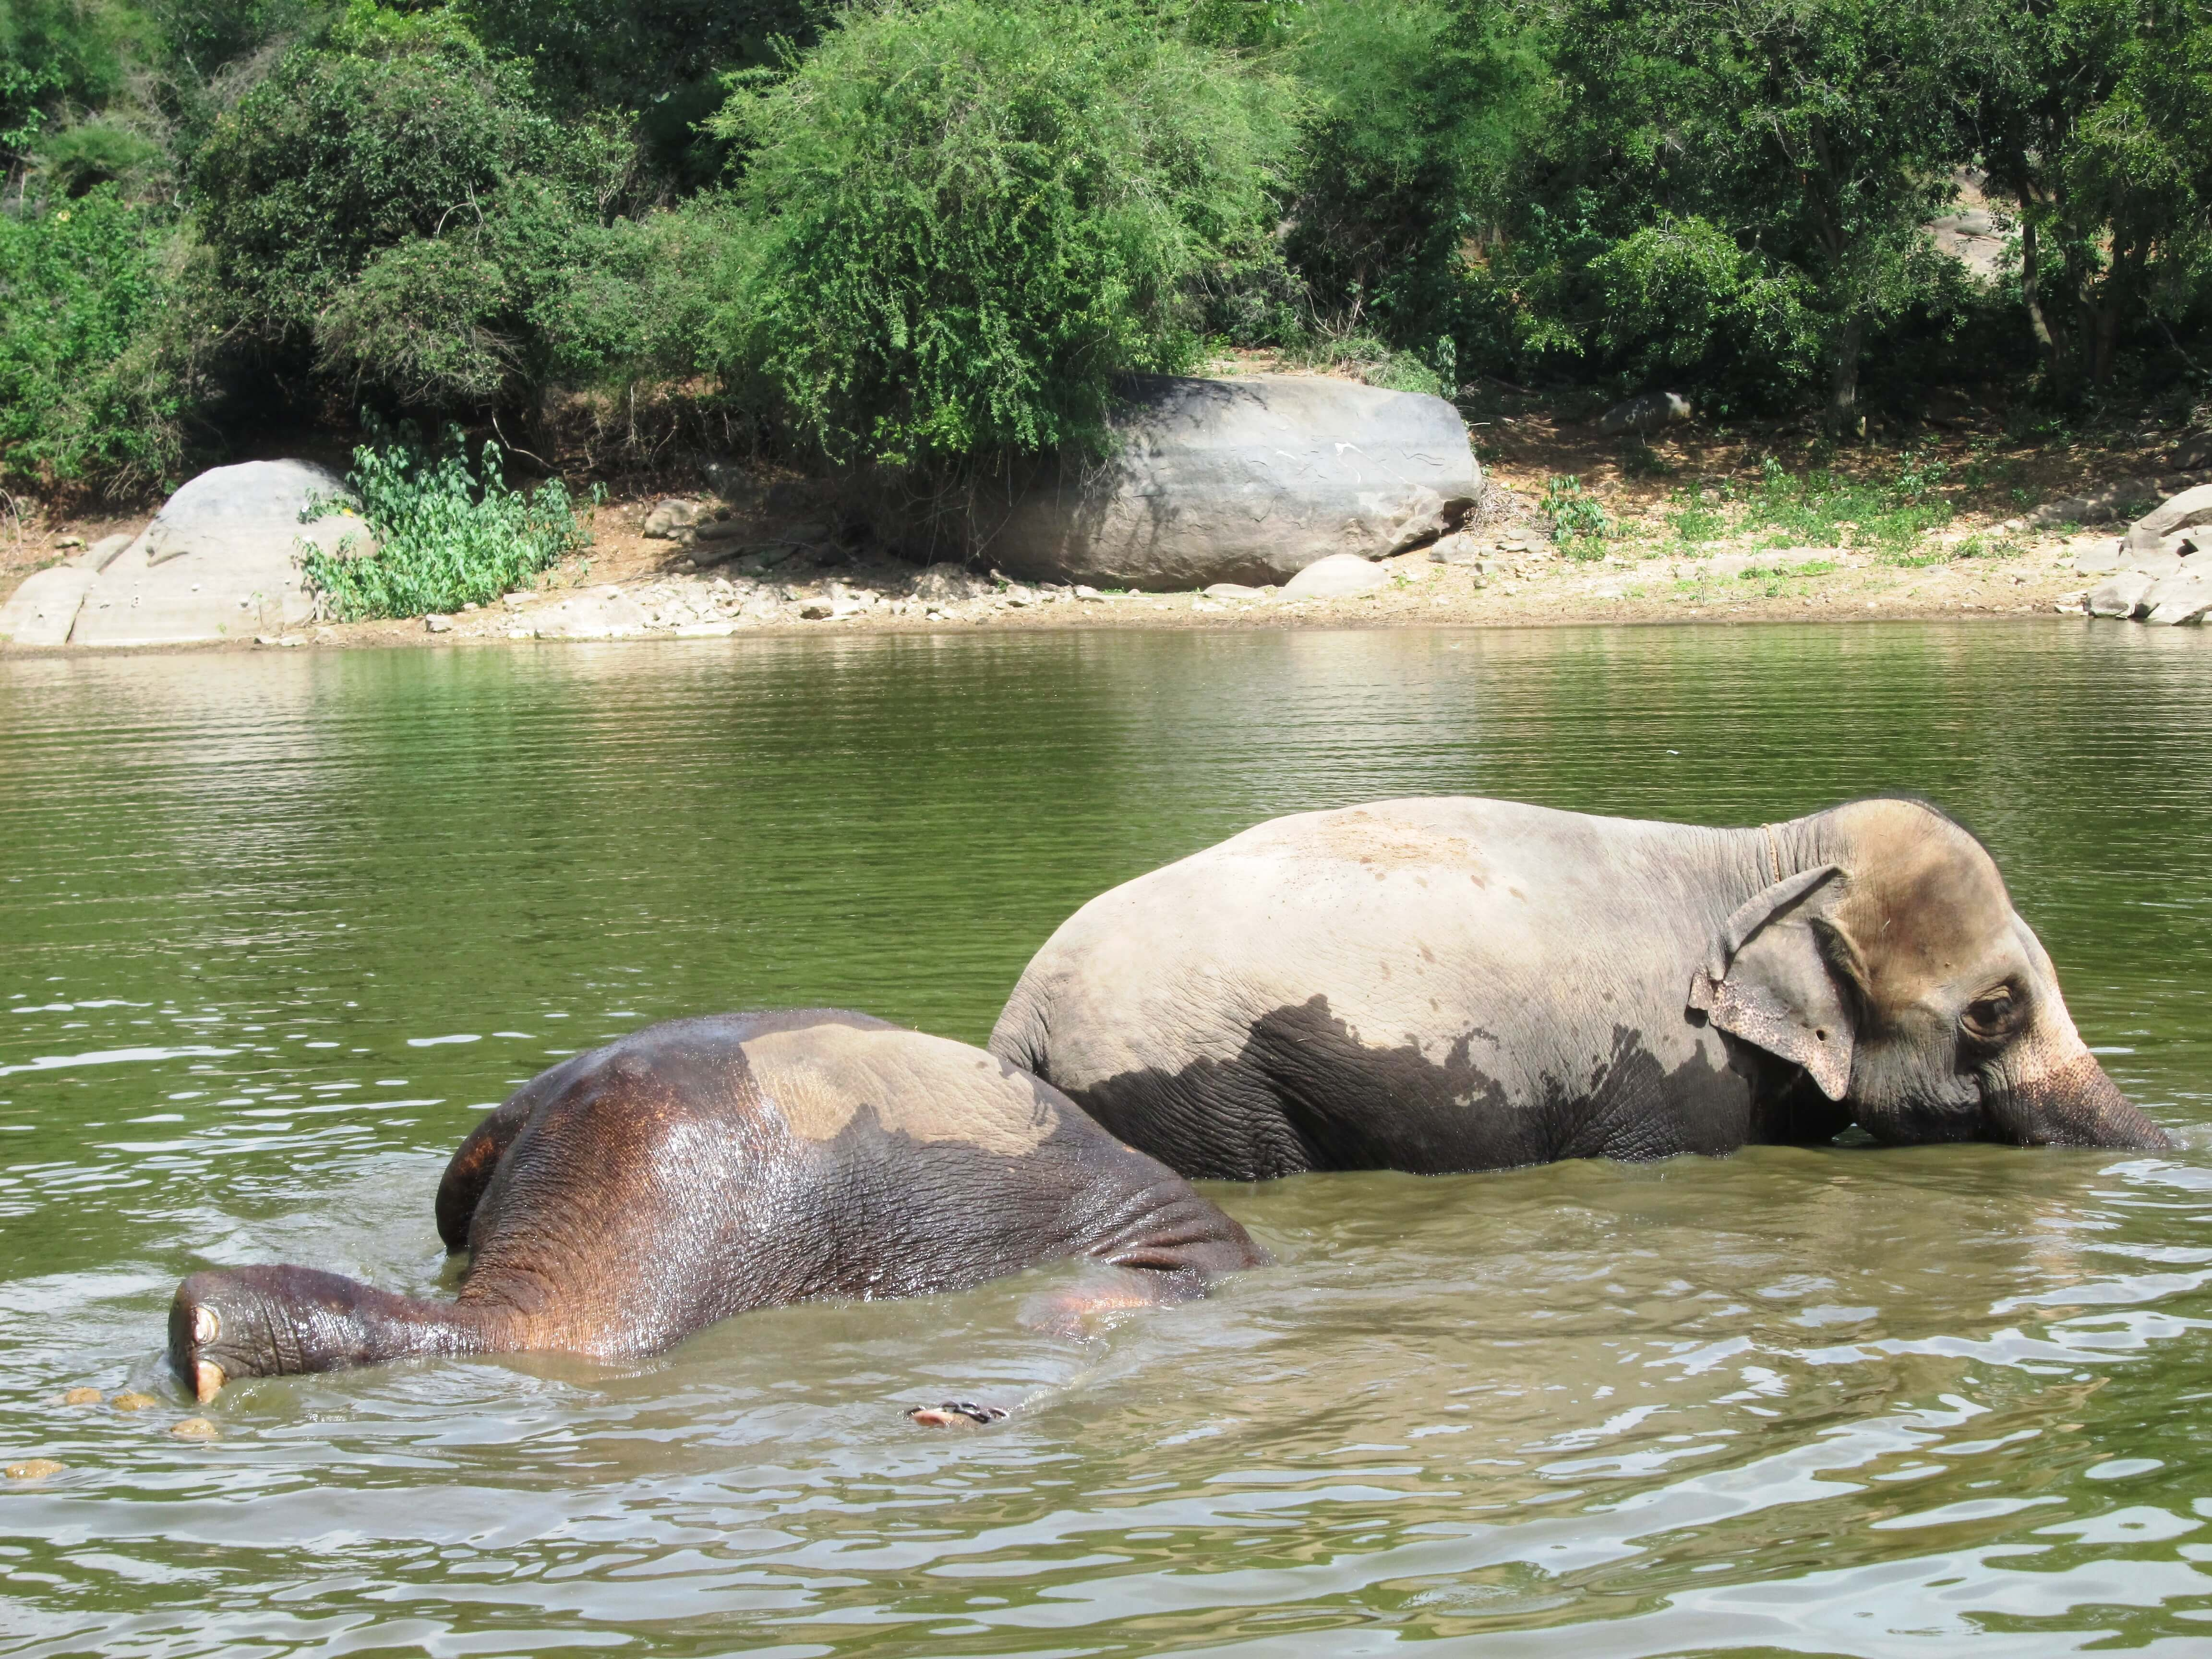 Sunder plunges right in.